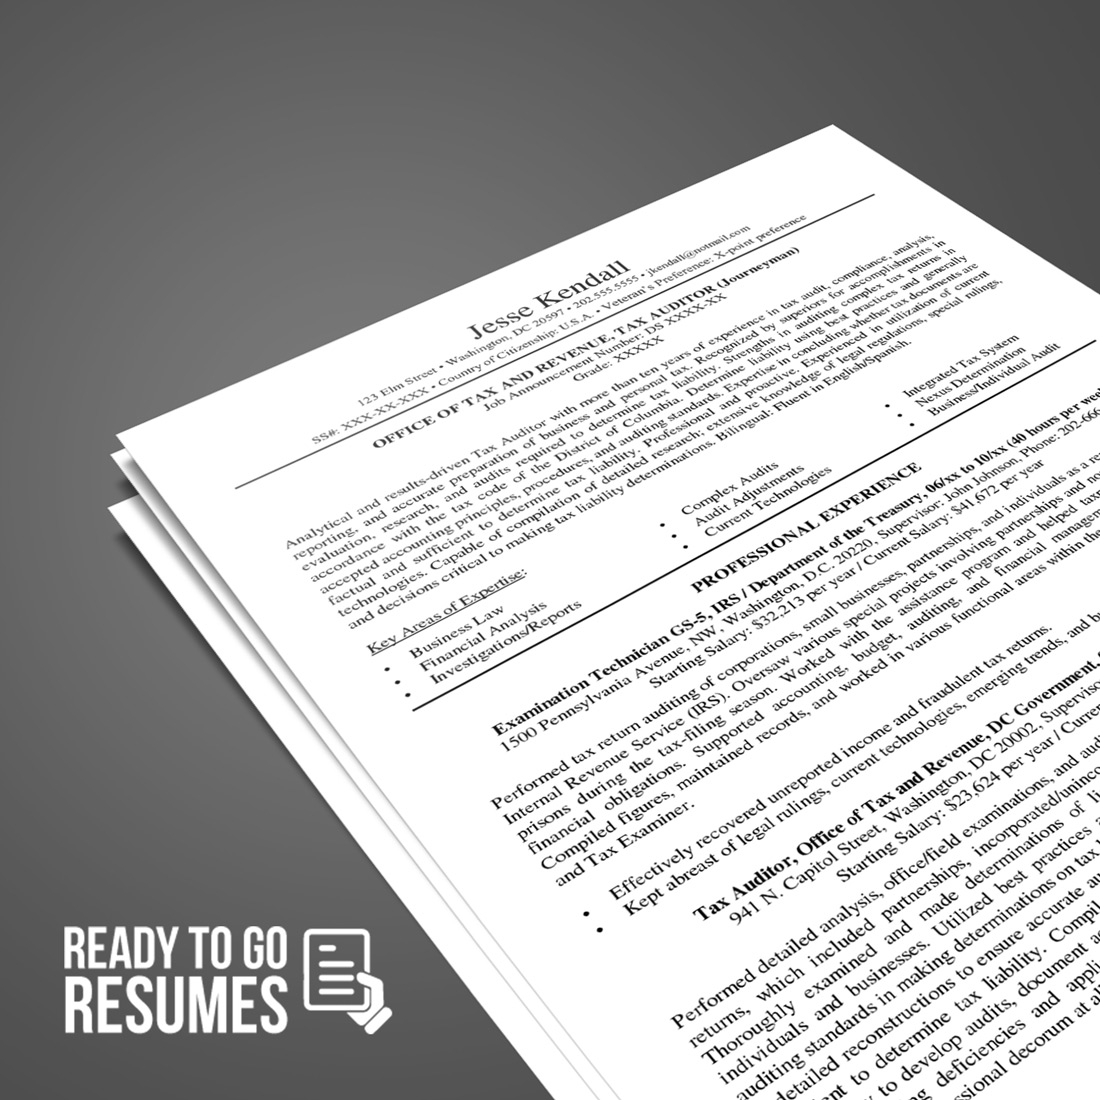 Order Your Resume Ready To Go